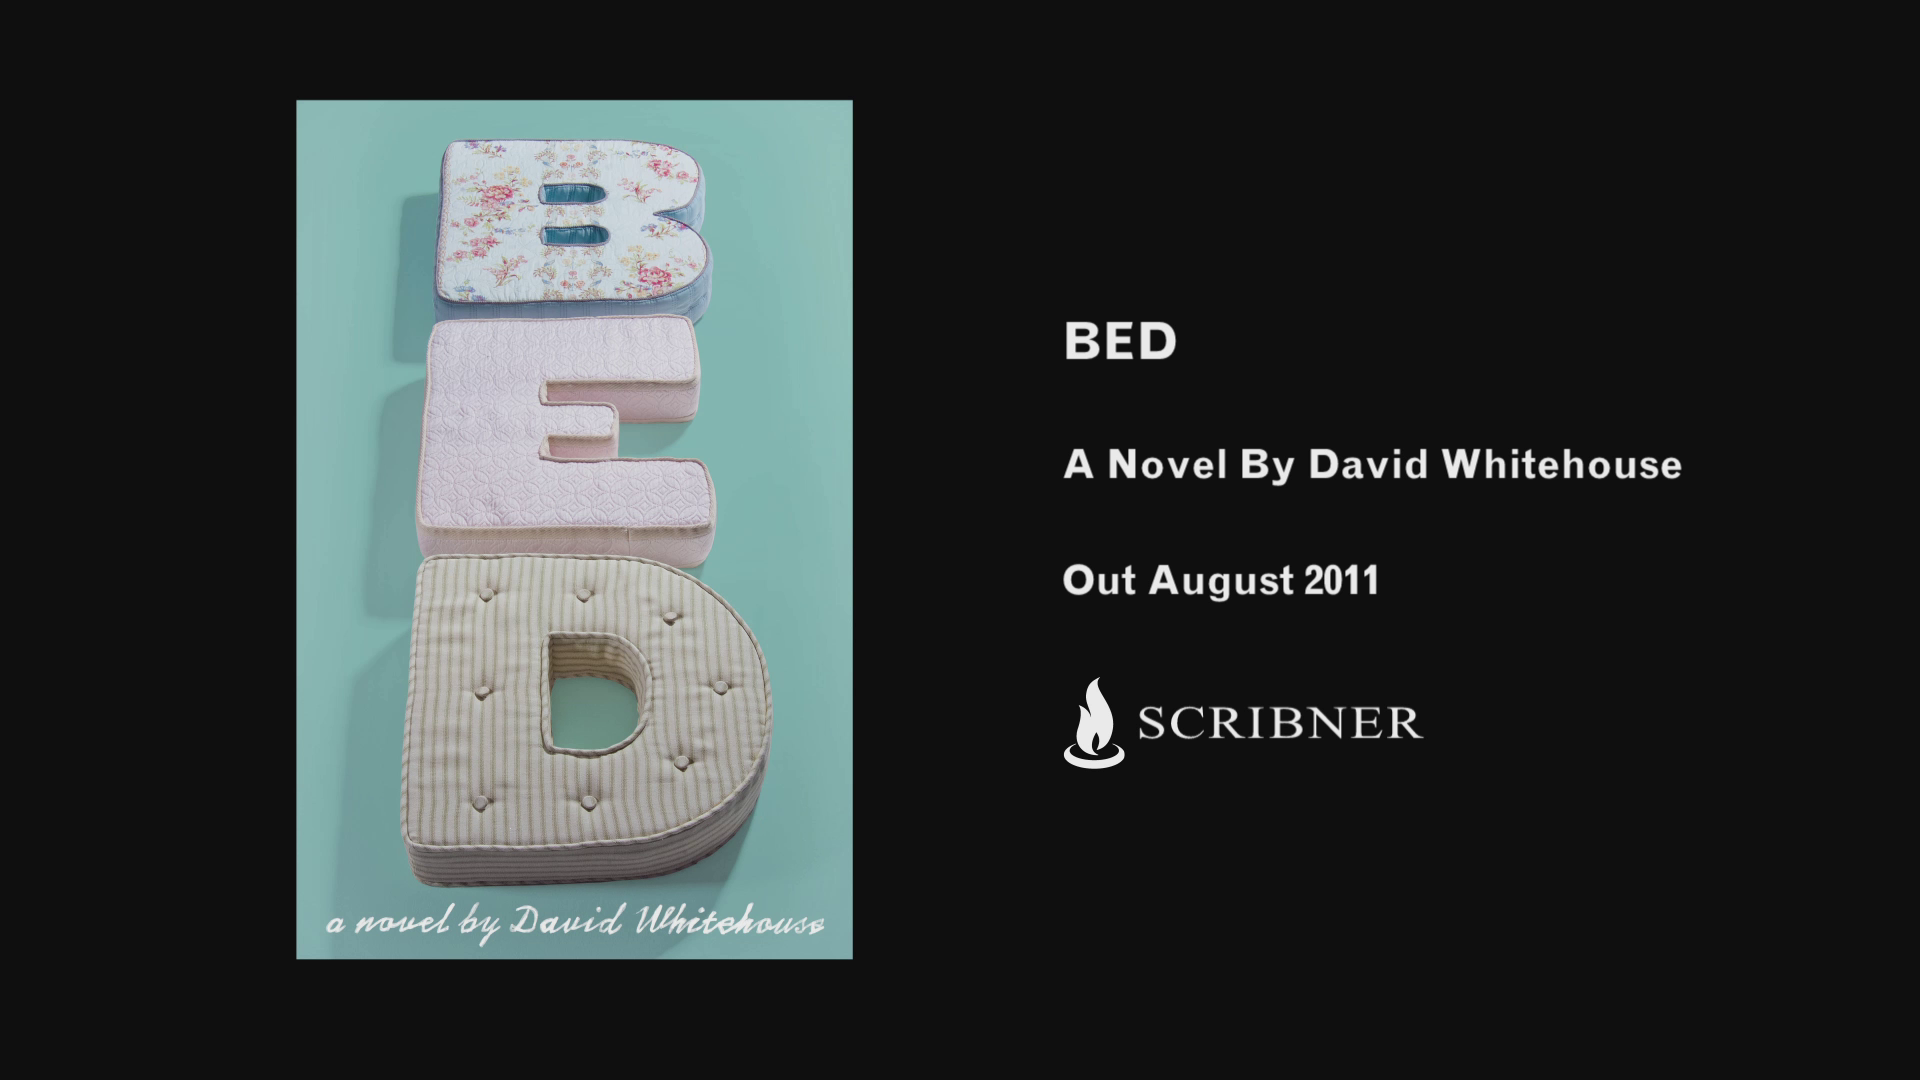 BED: A Novel by David Whitehouse